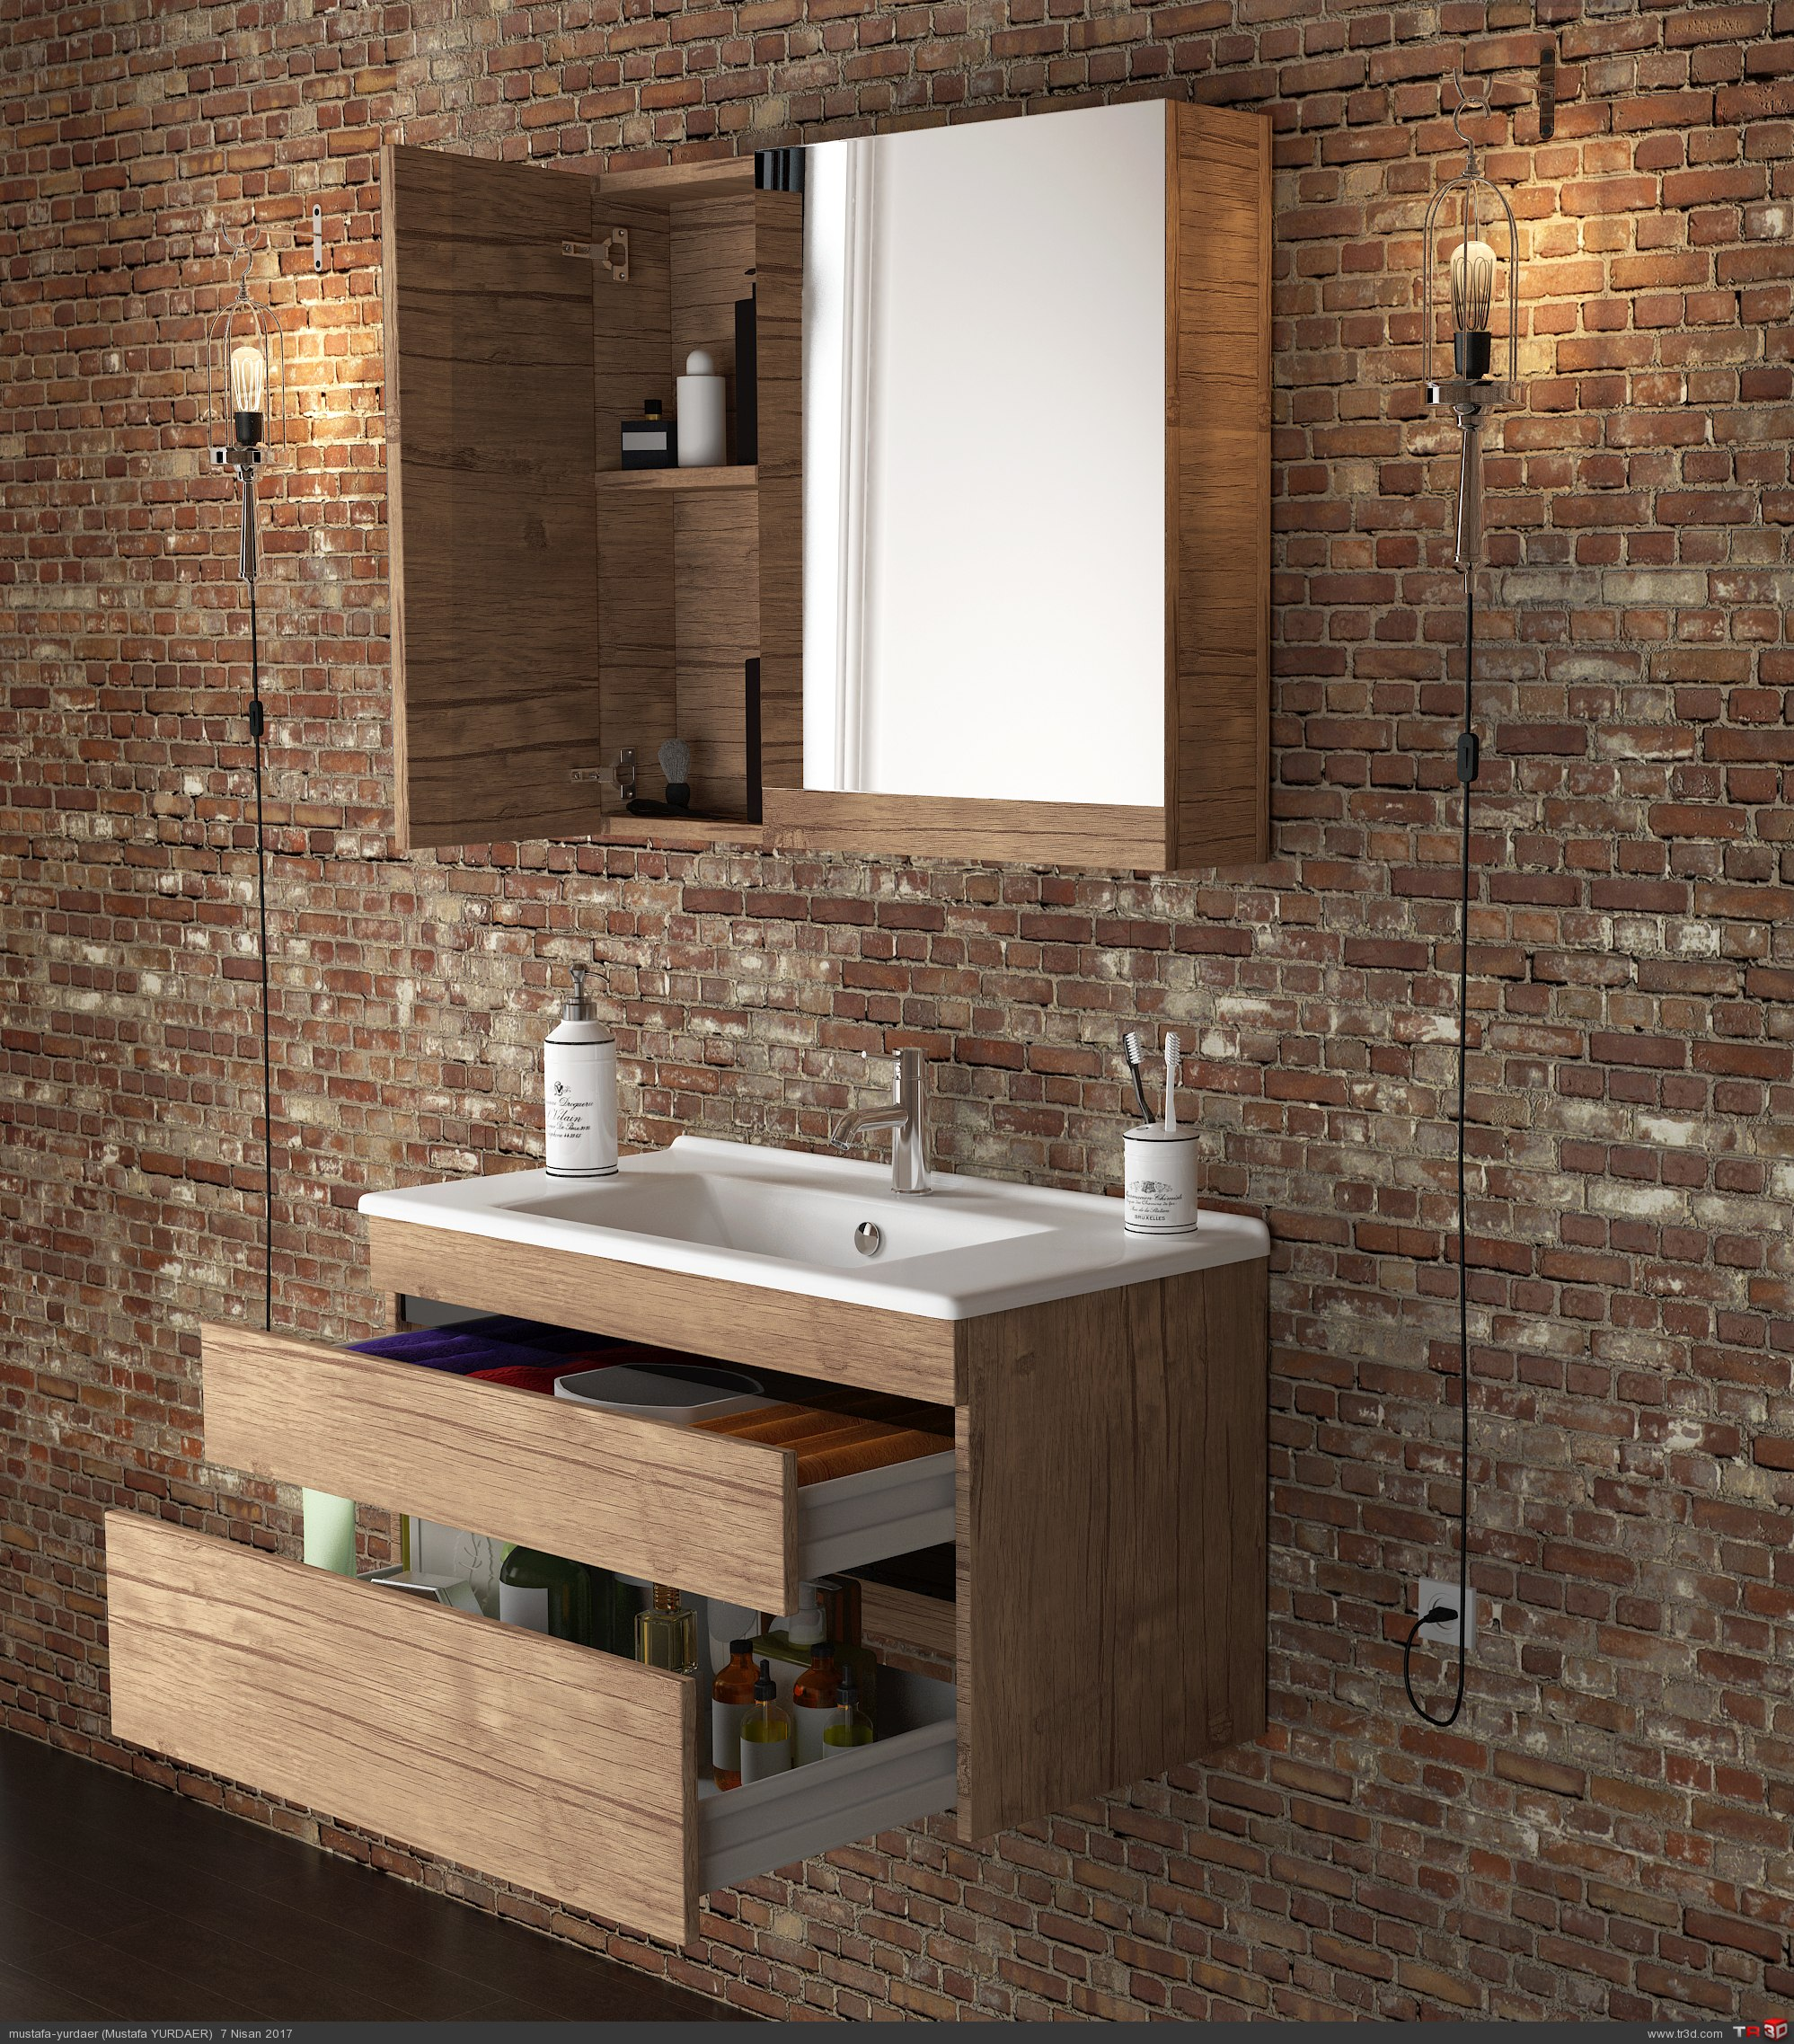 ANTIK LİGHT BATHROOM